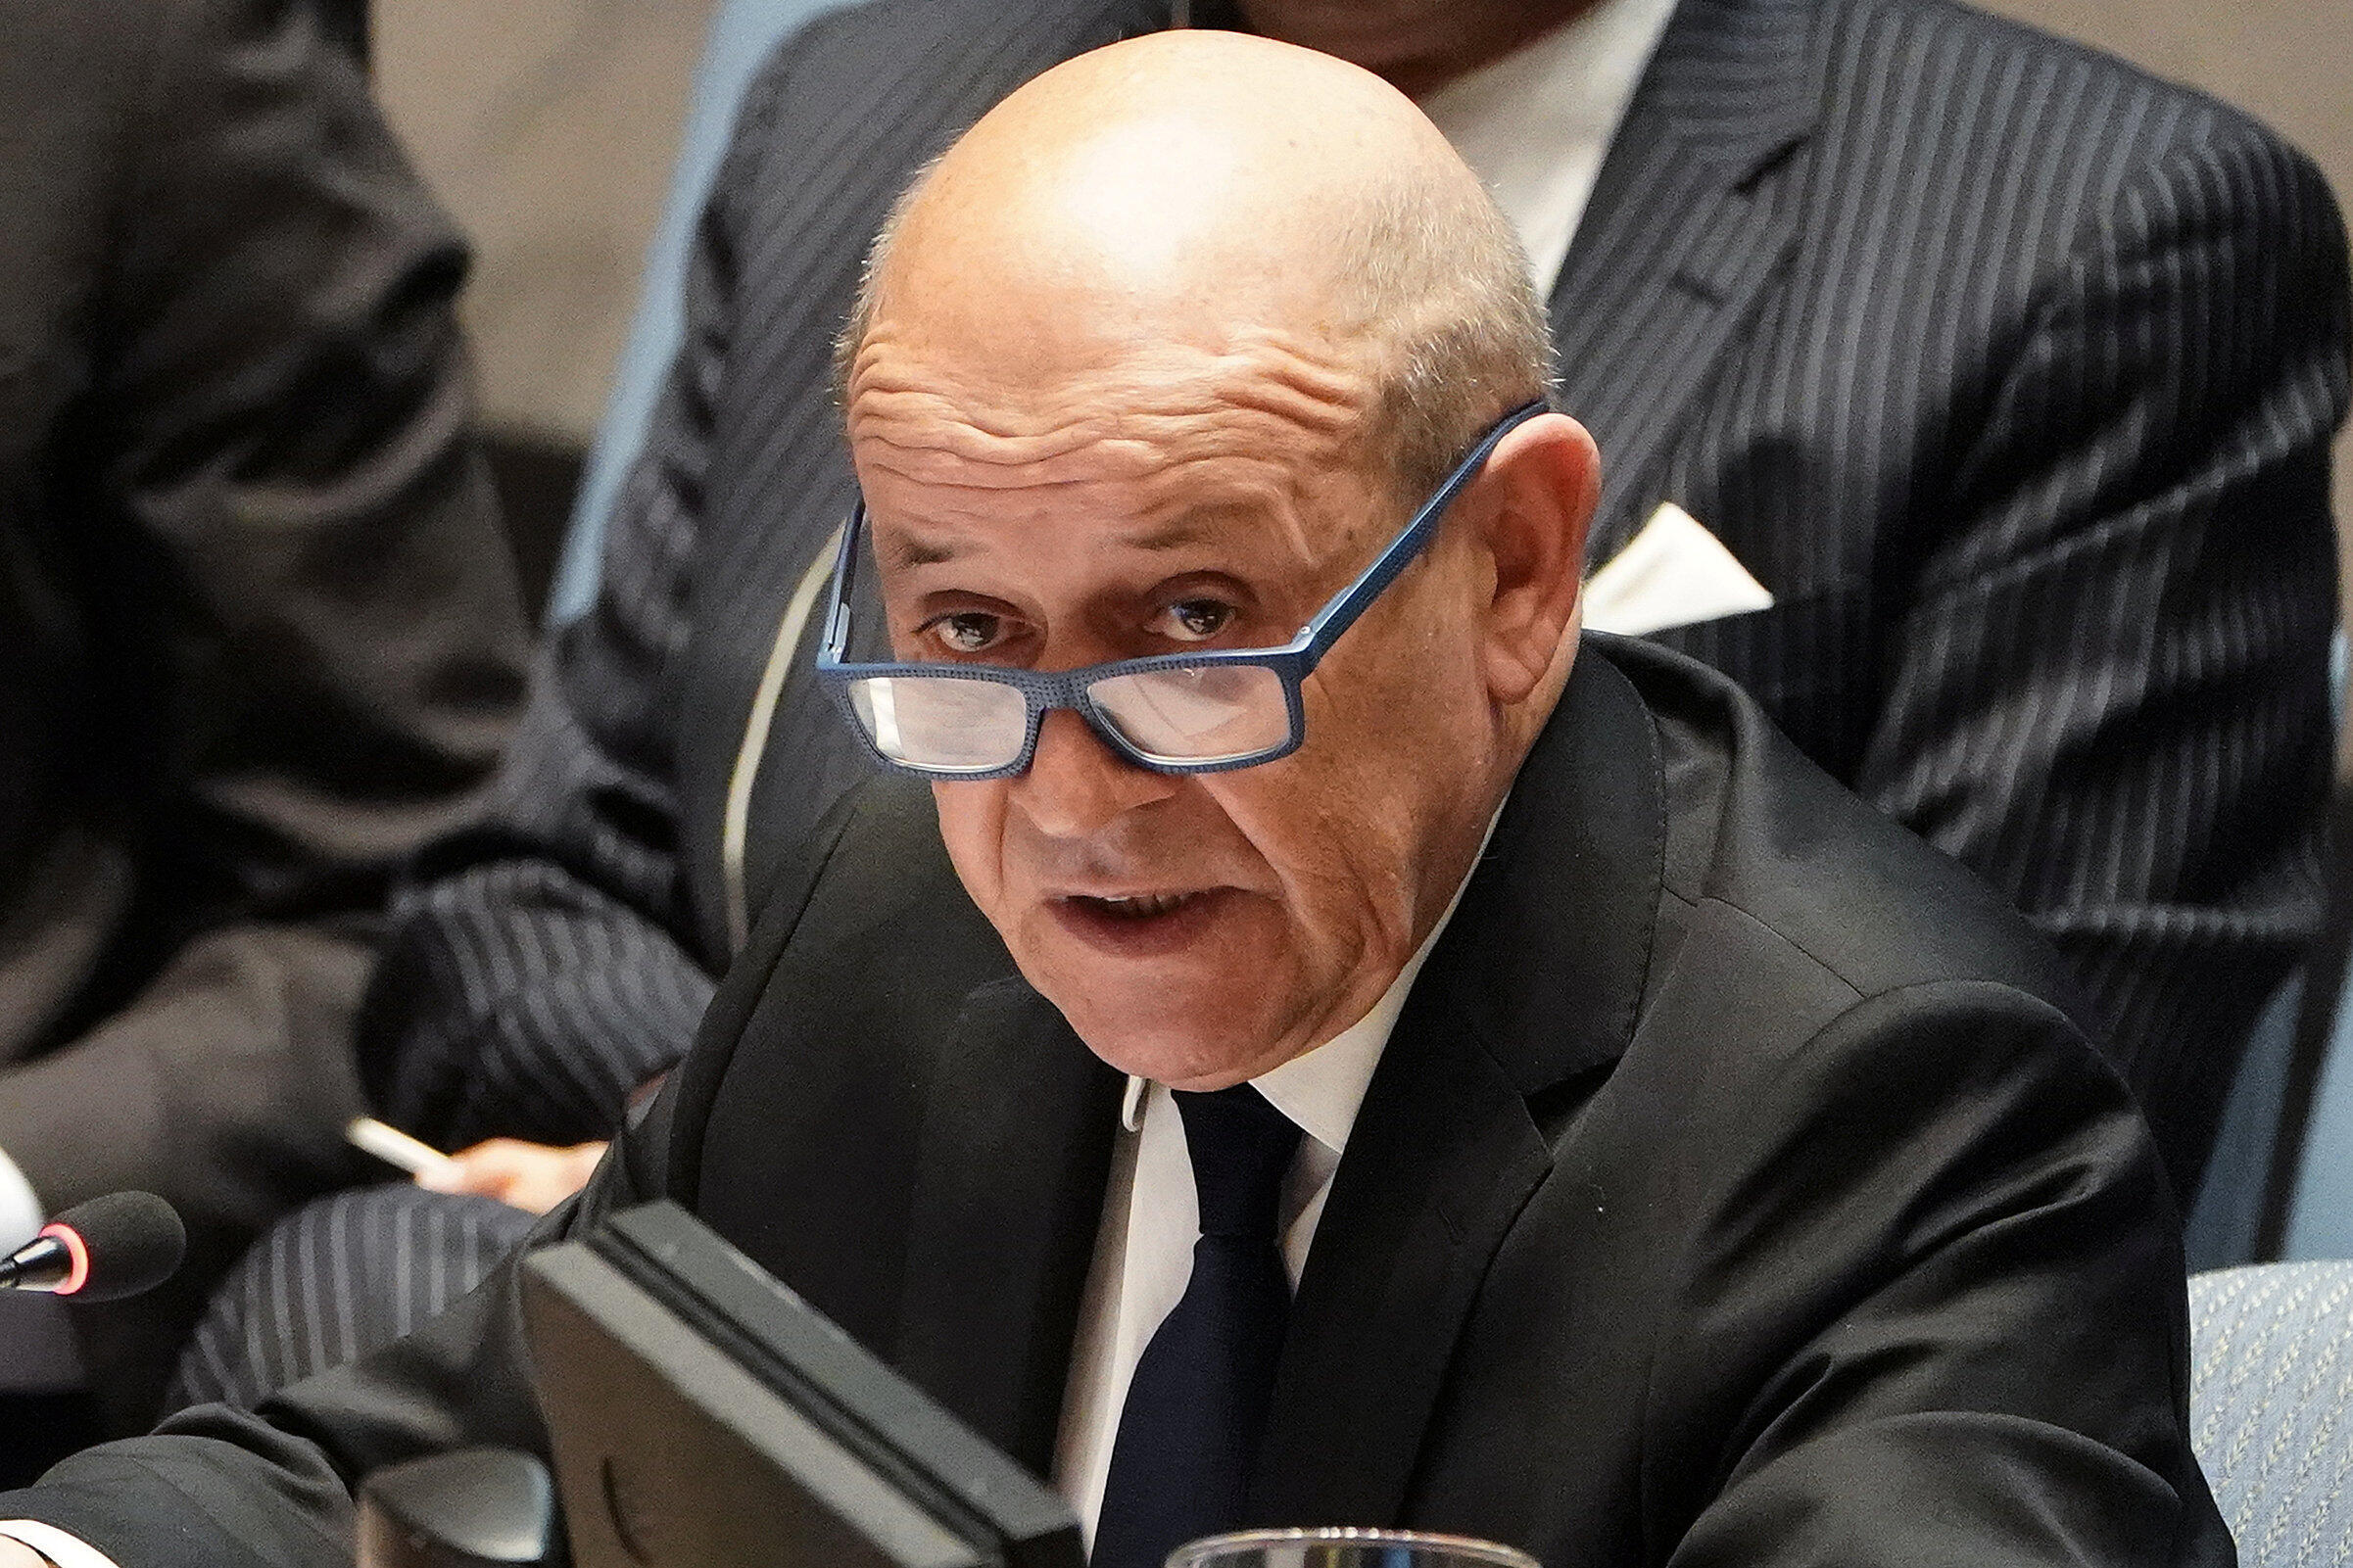 French Foreign Minister Jean-Yves Le Drian speaks with an aide at the United Nations during a meeting about combatting the financing of terrorism in New York, New York, U.S., March 28, 2019.